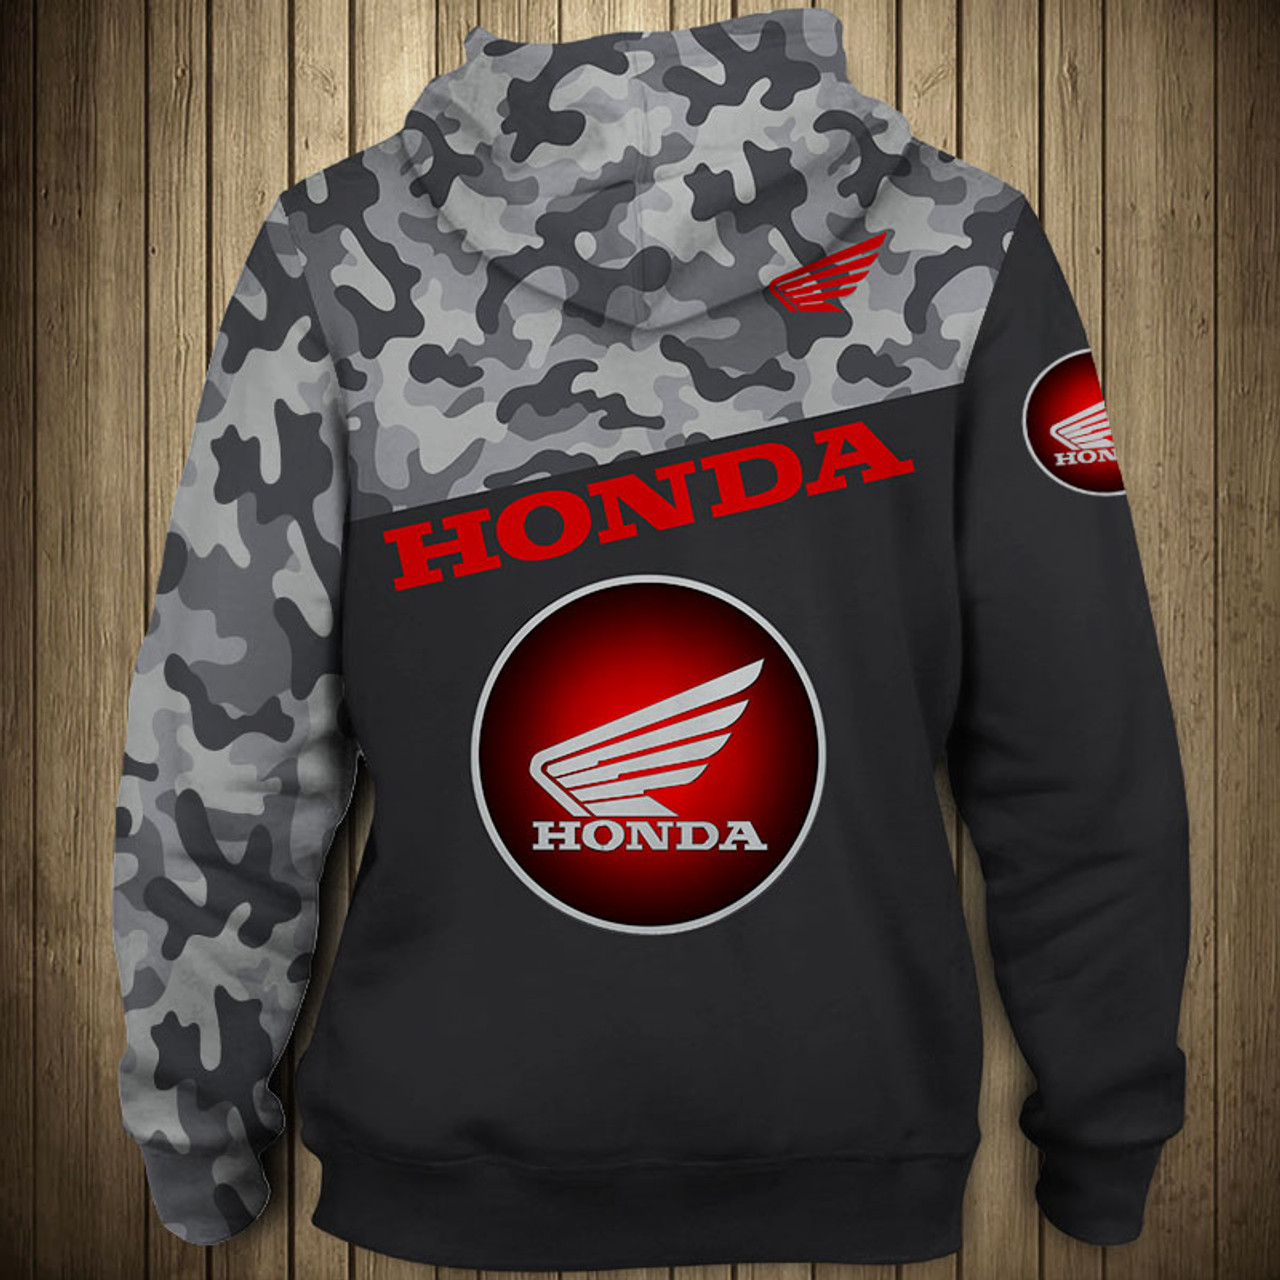 neue Produkte für Farben und auffällig guter Service **(OFFICIAL-HONDA-MOTORCYCLE-DESERT-CAMO.PULLOVER-HOODIES/NICE-3D-CUSTOM-GRAPHIC-PRINTED  & DOUBLE-SIDED-ALL-OVER-DESIGN/CLASSIC-OFFICIAL-CUSTOM-HONDA-...